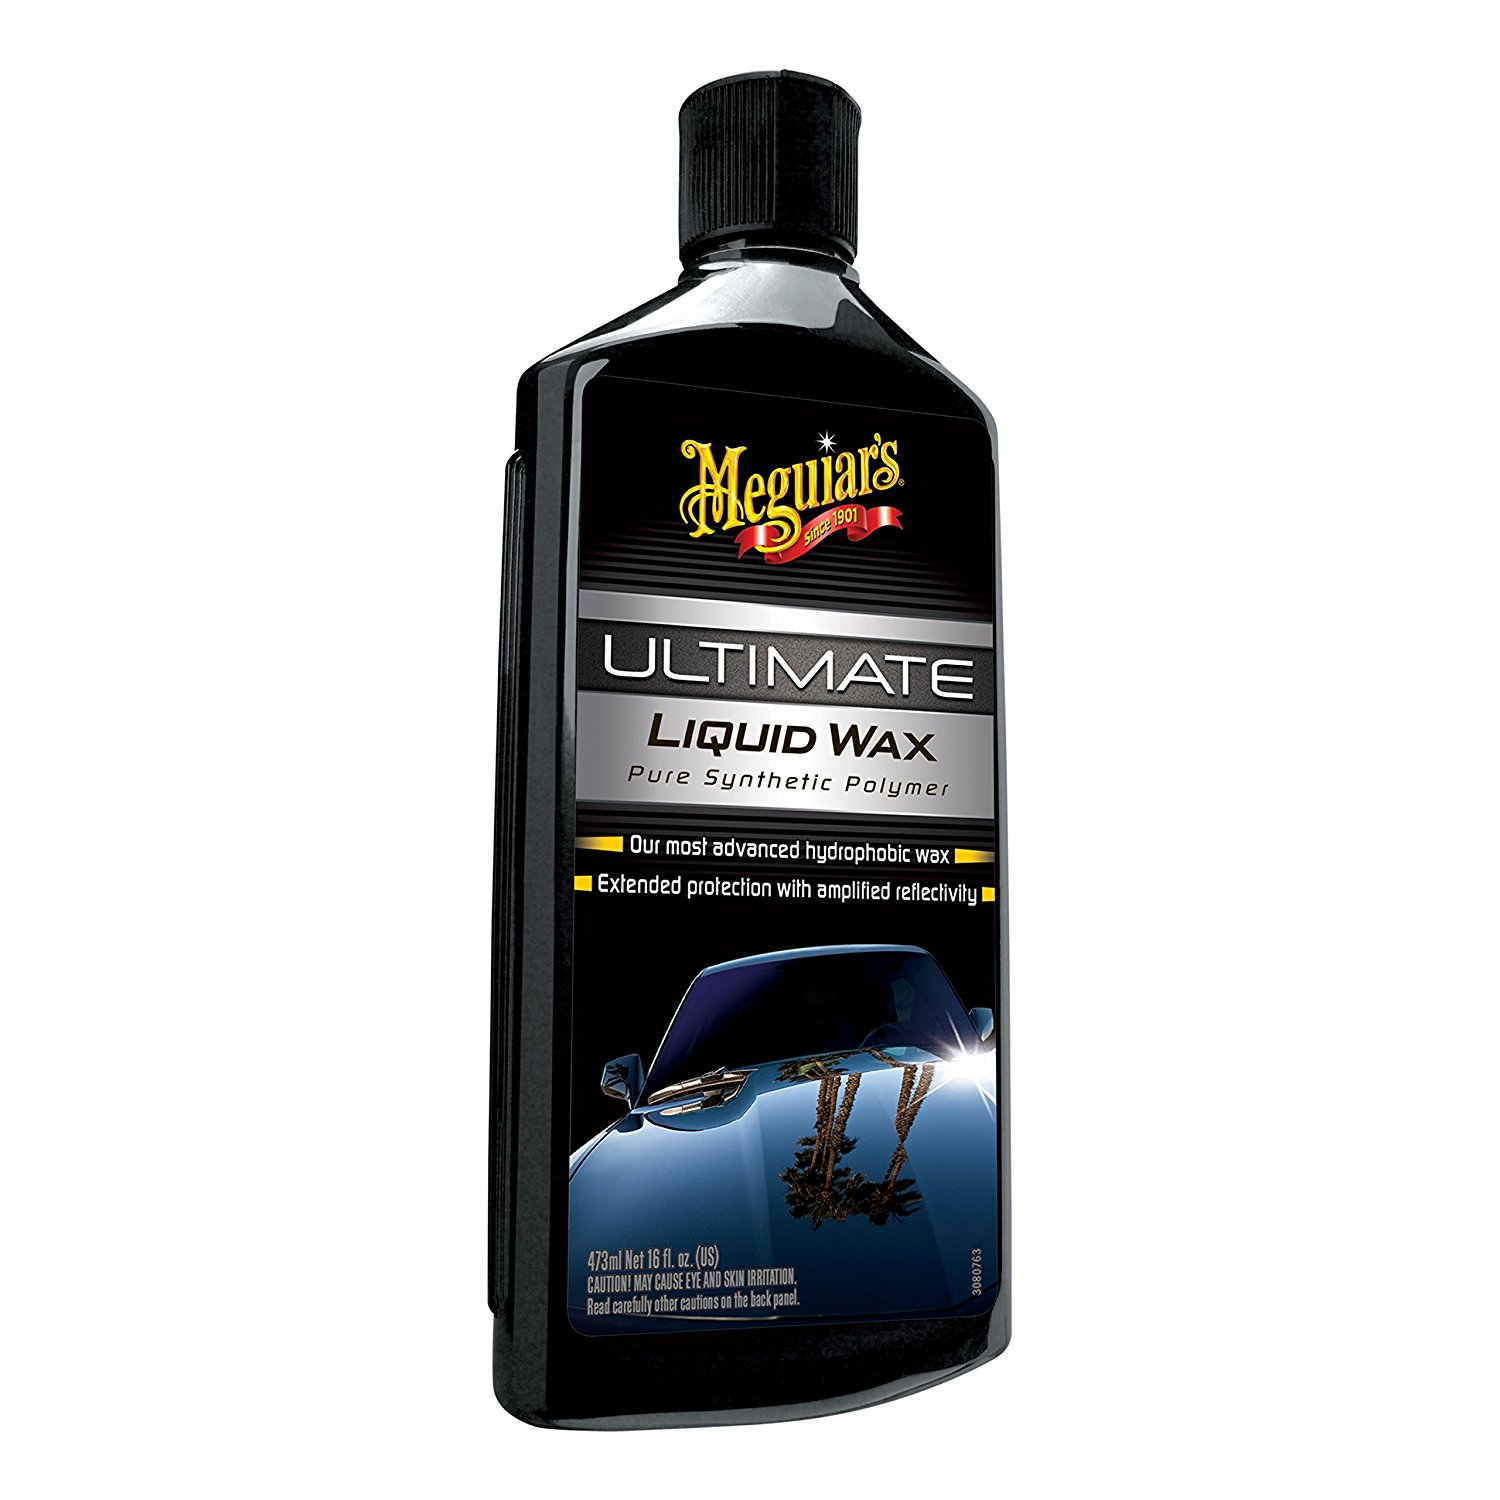 meguiars ultimate liquid wax review superior look and. Black Bedroom Furniture Sets. Home Design Ideas